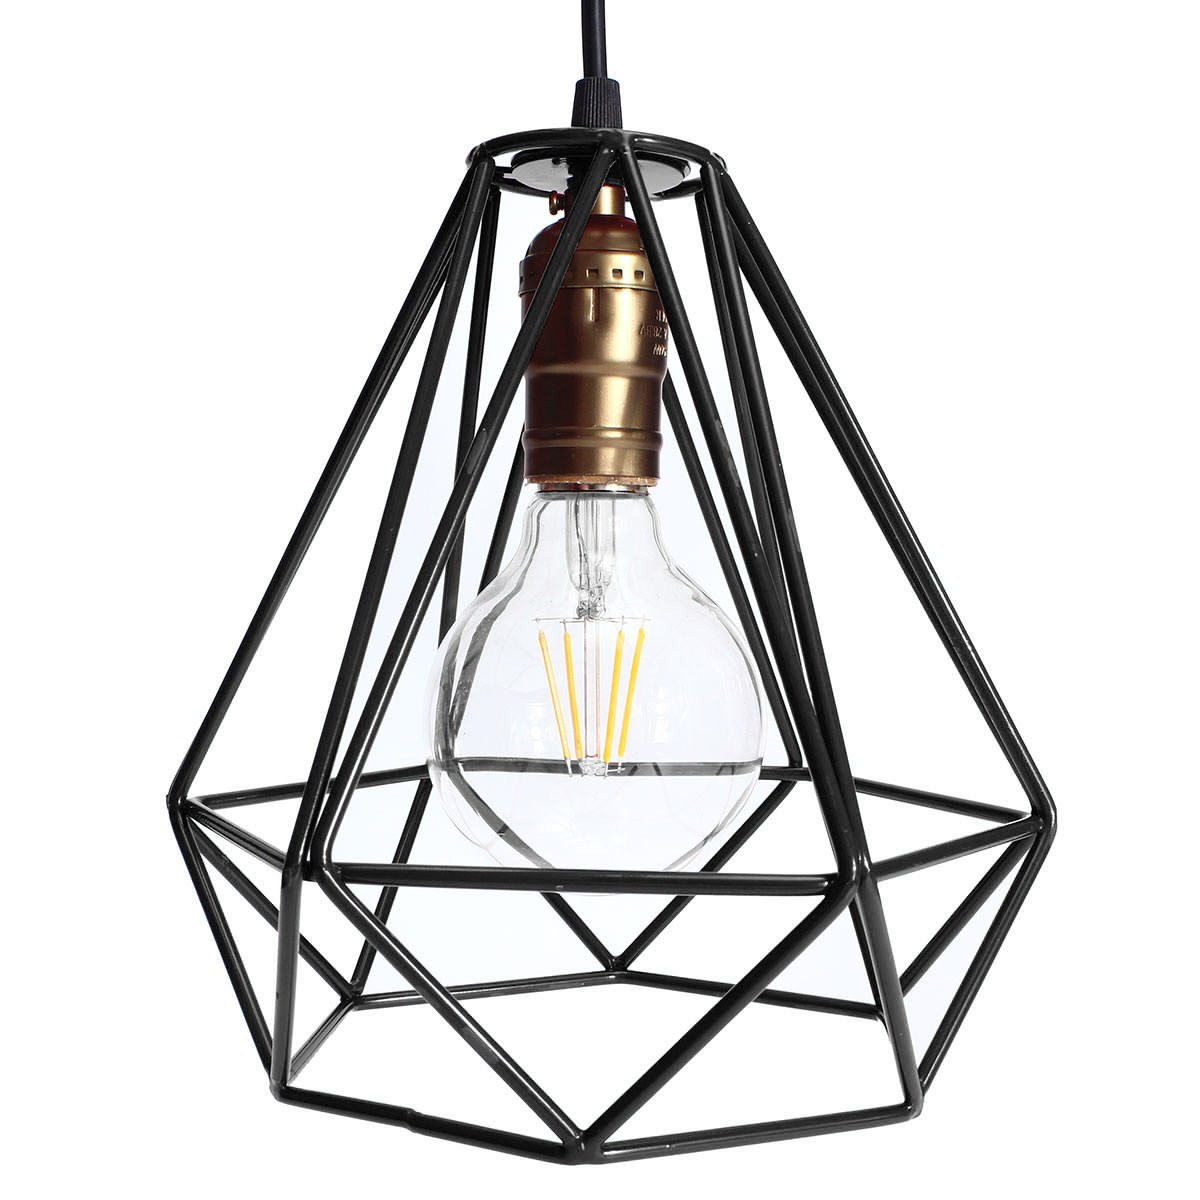 New lamp cover loft industrial edison metal wire frame ceiling new lamp cover loft industrial edison metal wire frame ceiling pendant hanging light lamp lampshade modern cage fixture in lamp covers shades from lights greentooth Images